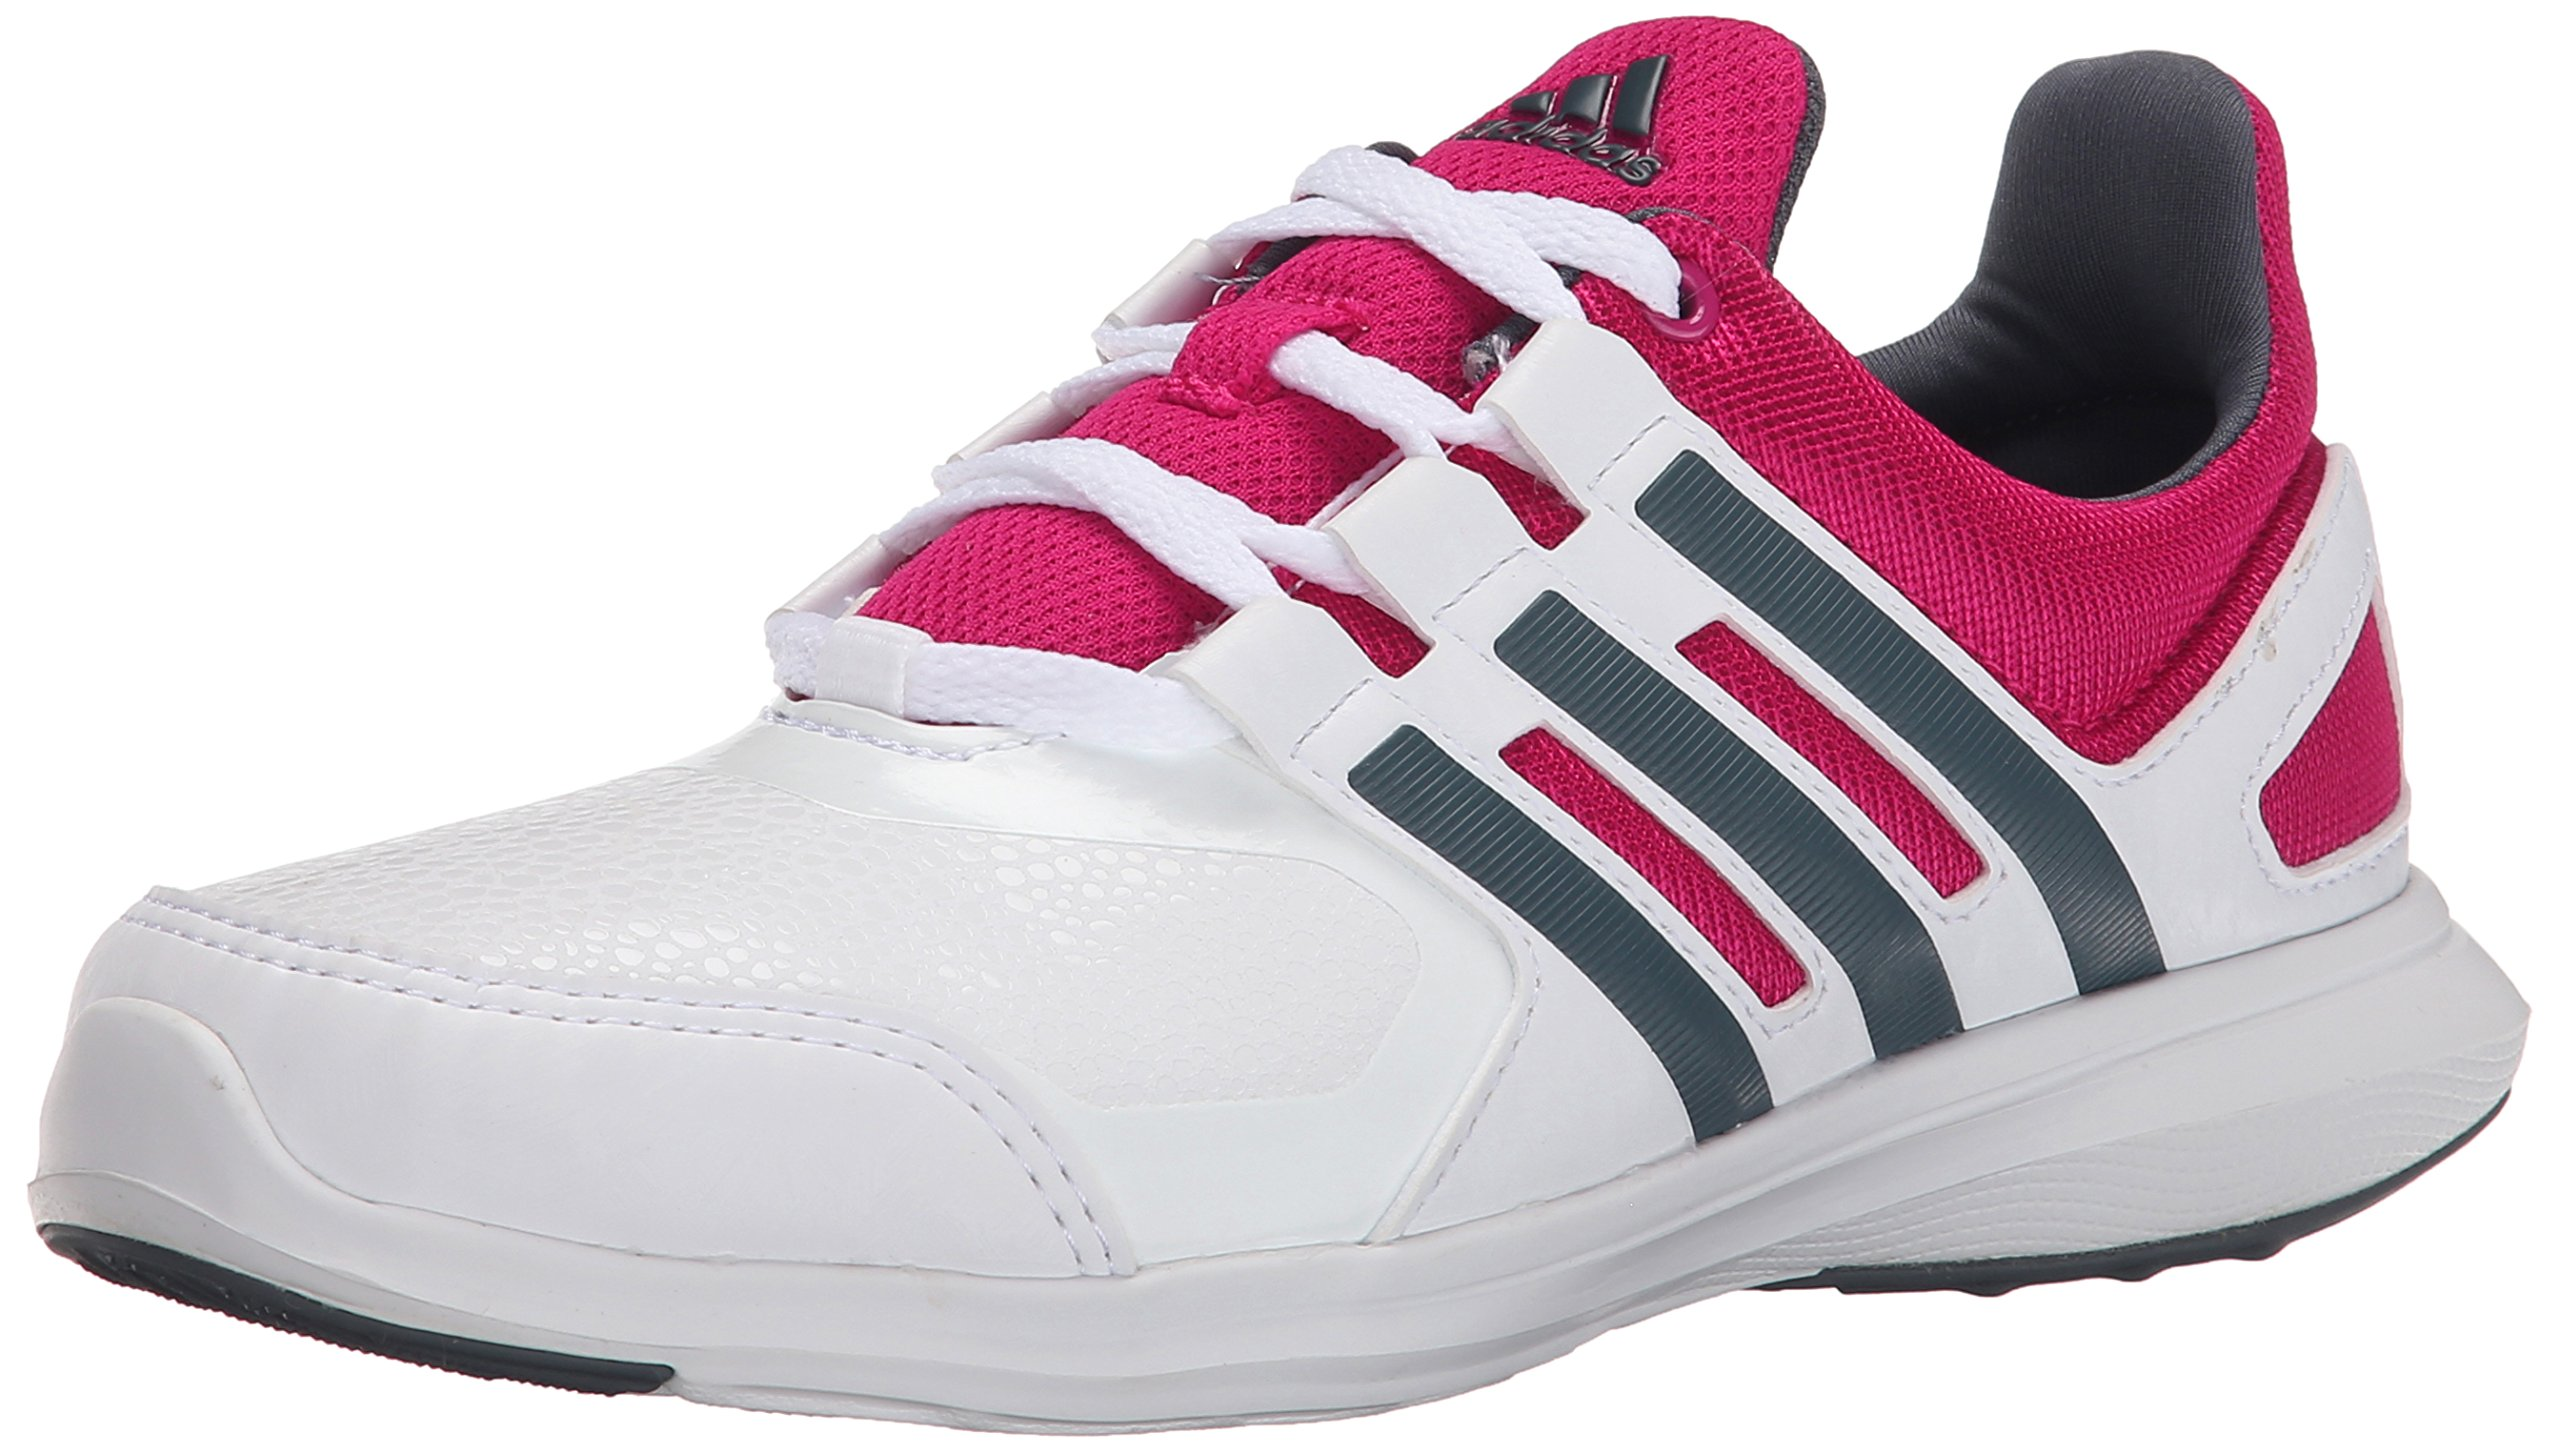 info for 987d4 7bfee Galleon - Adidas Performance Hyperfast 2.0 K Running Shoe (Little Kid Big  Kid),White Grey Pink,10.5 M US Little Kid